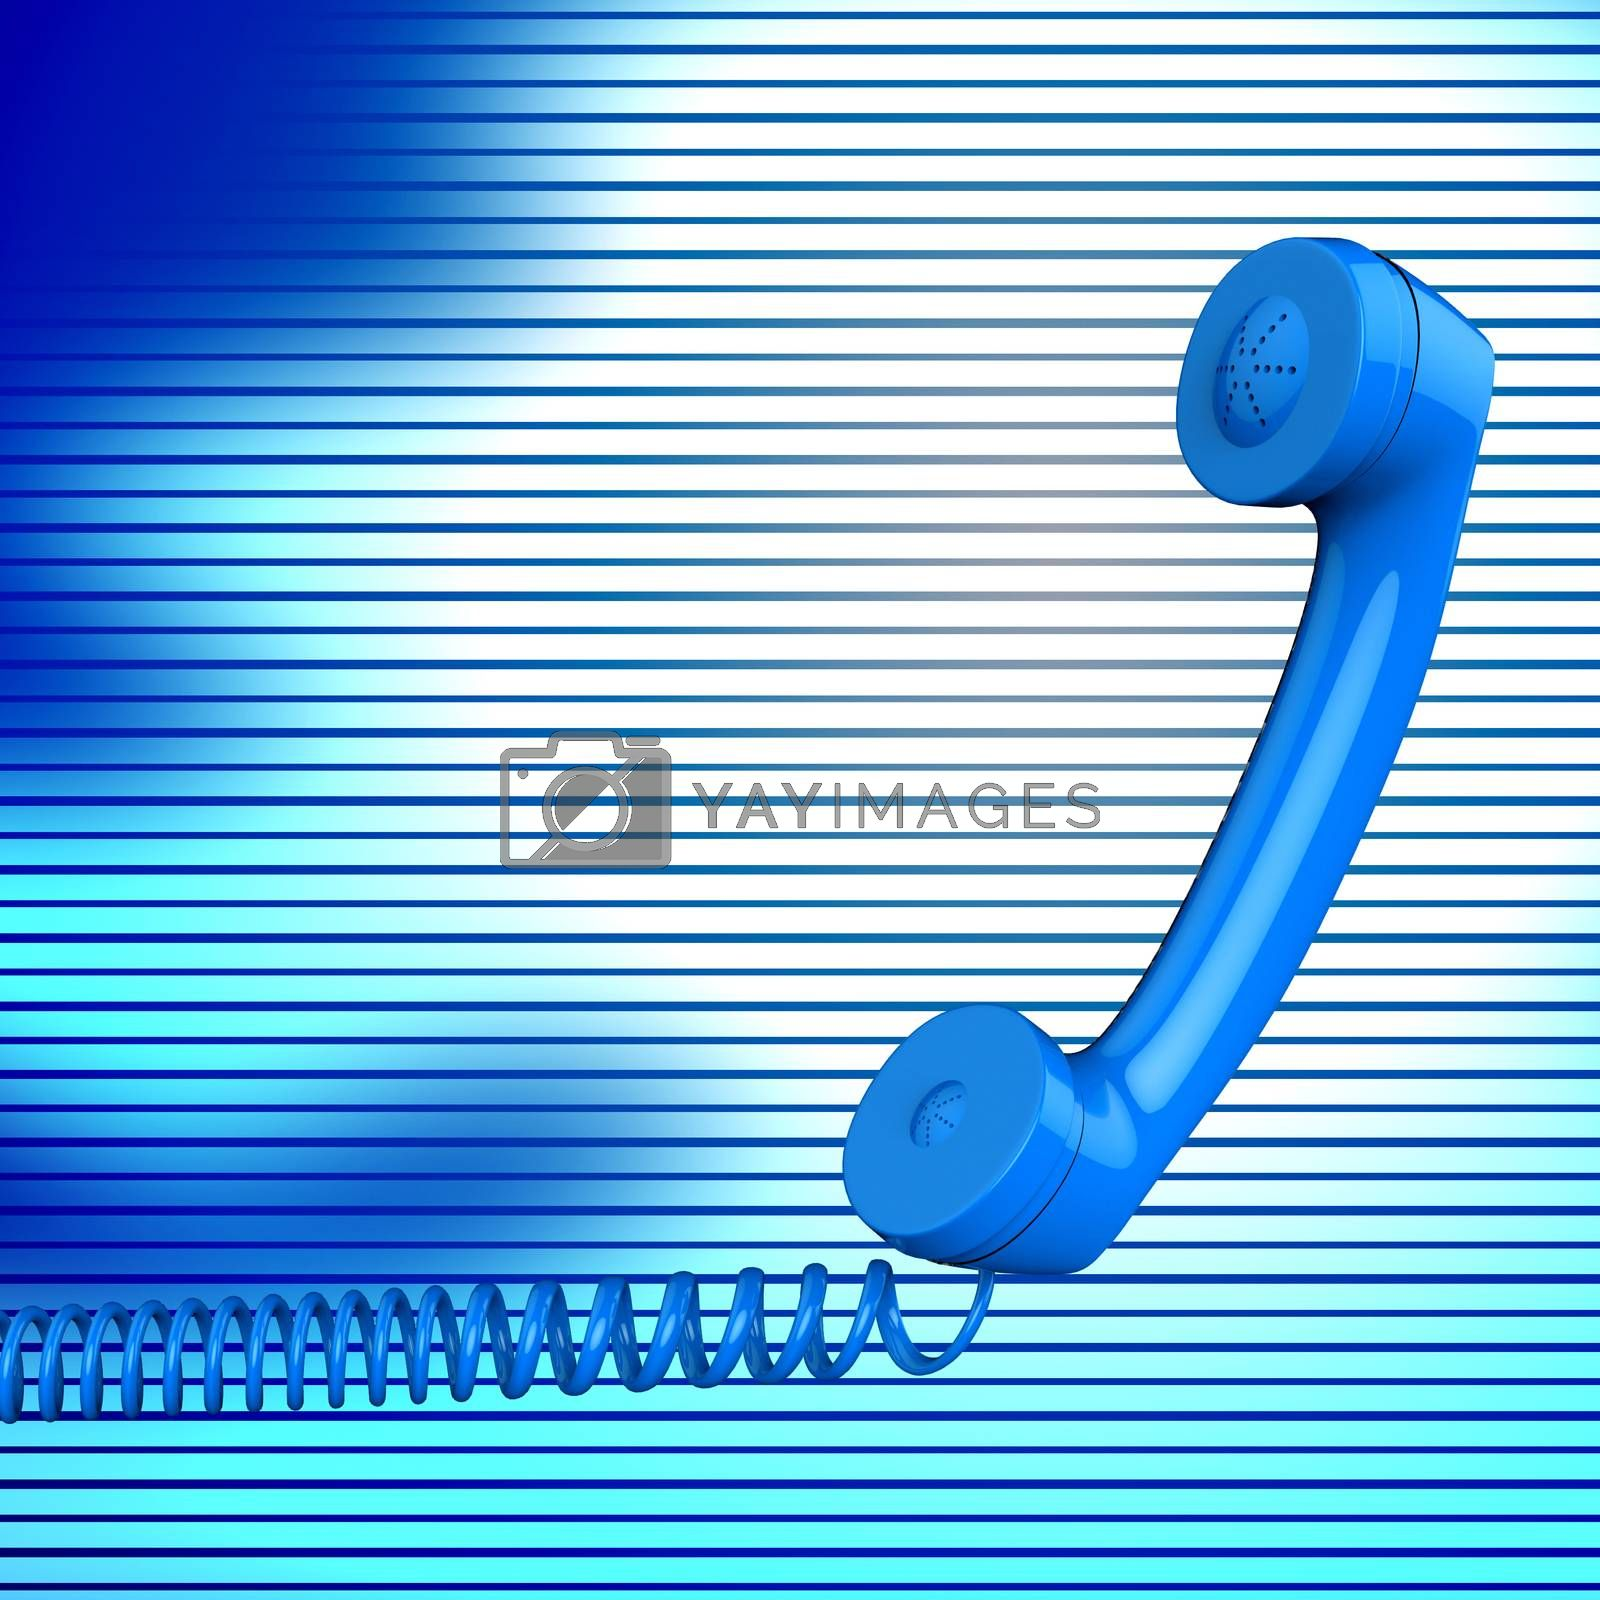 Contact Us Means Phone Call And Answer by stuartmiles